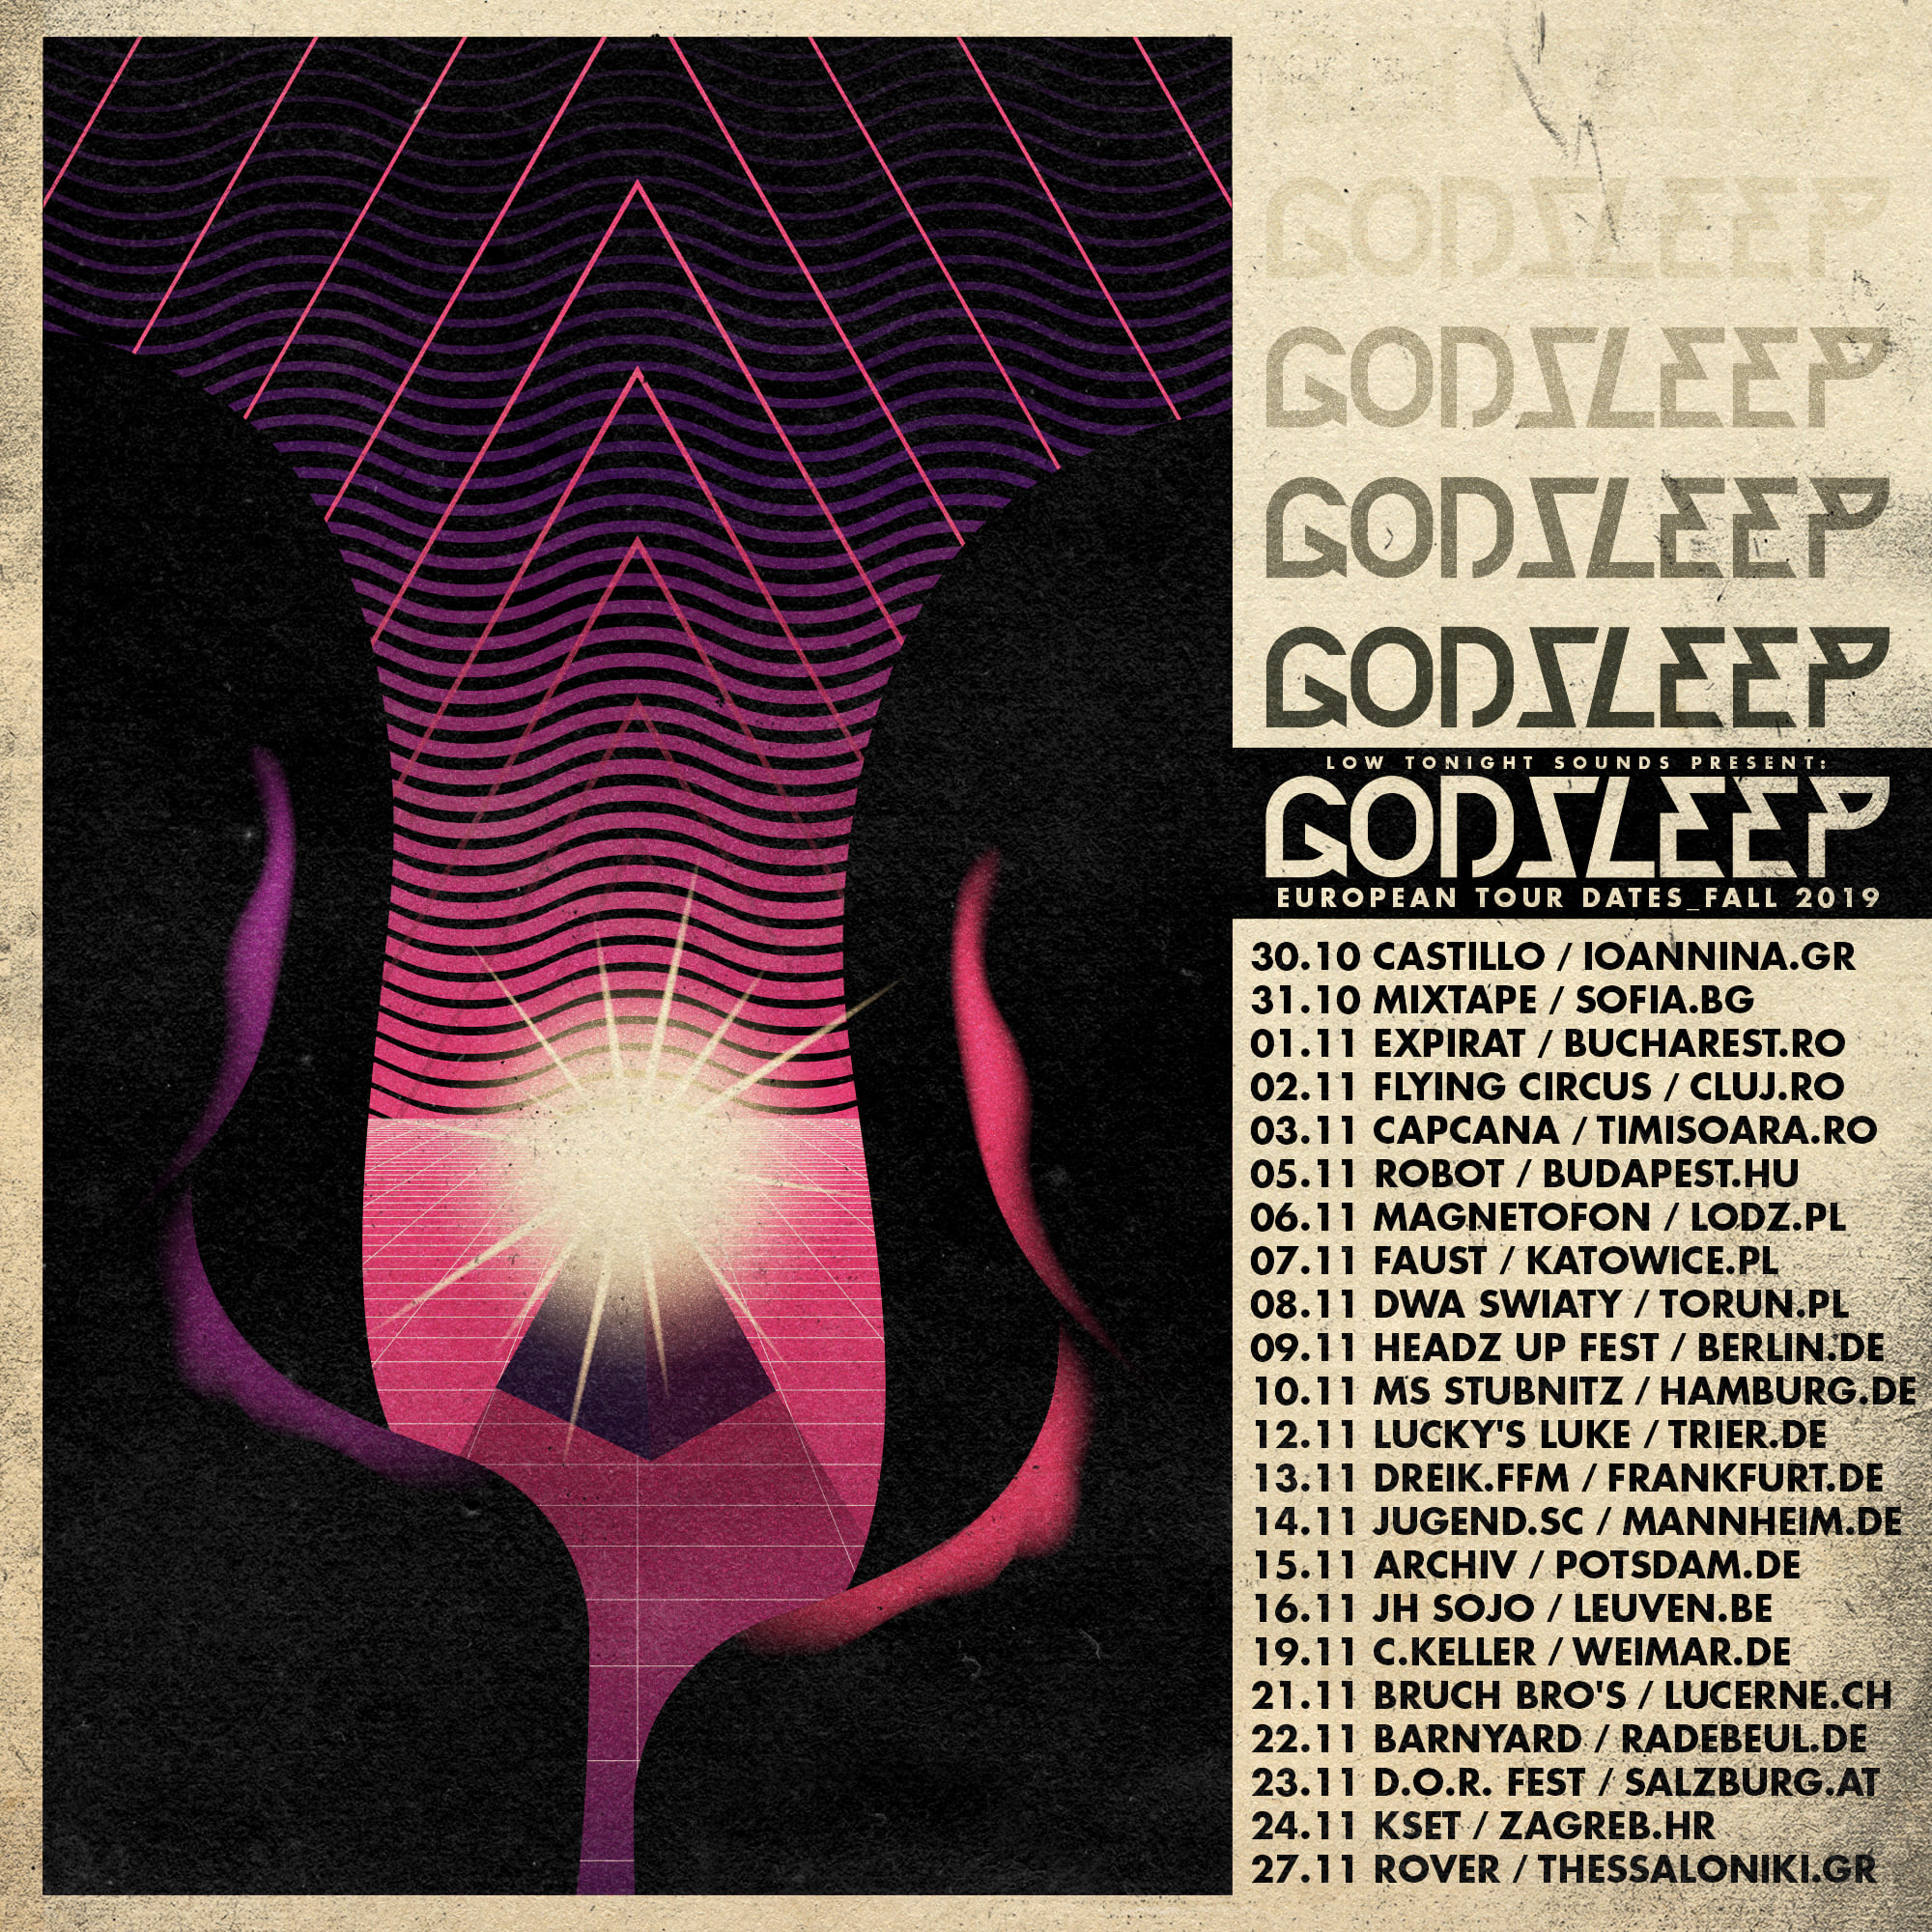 godsleep tour